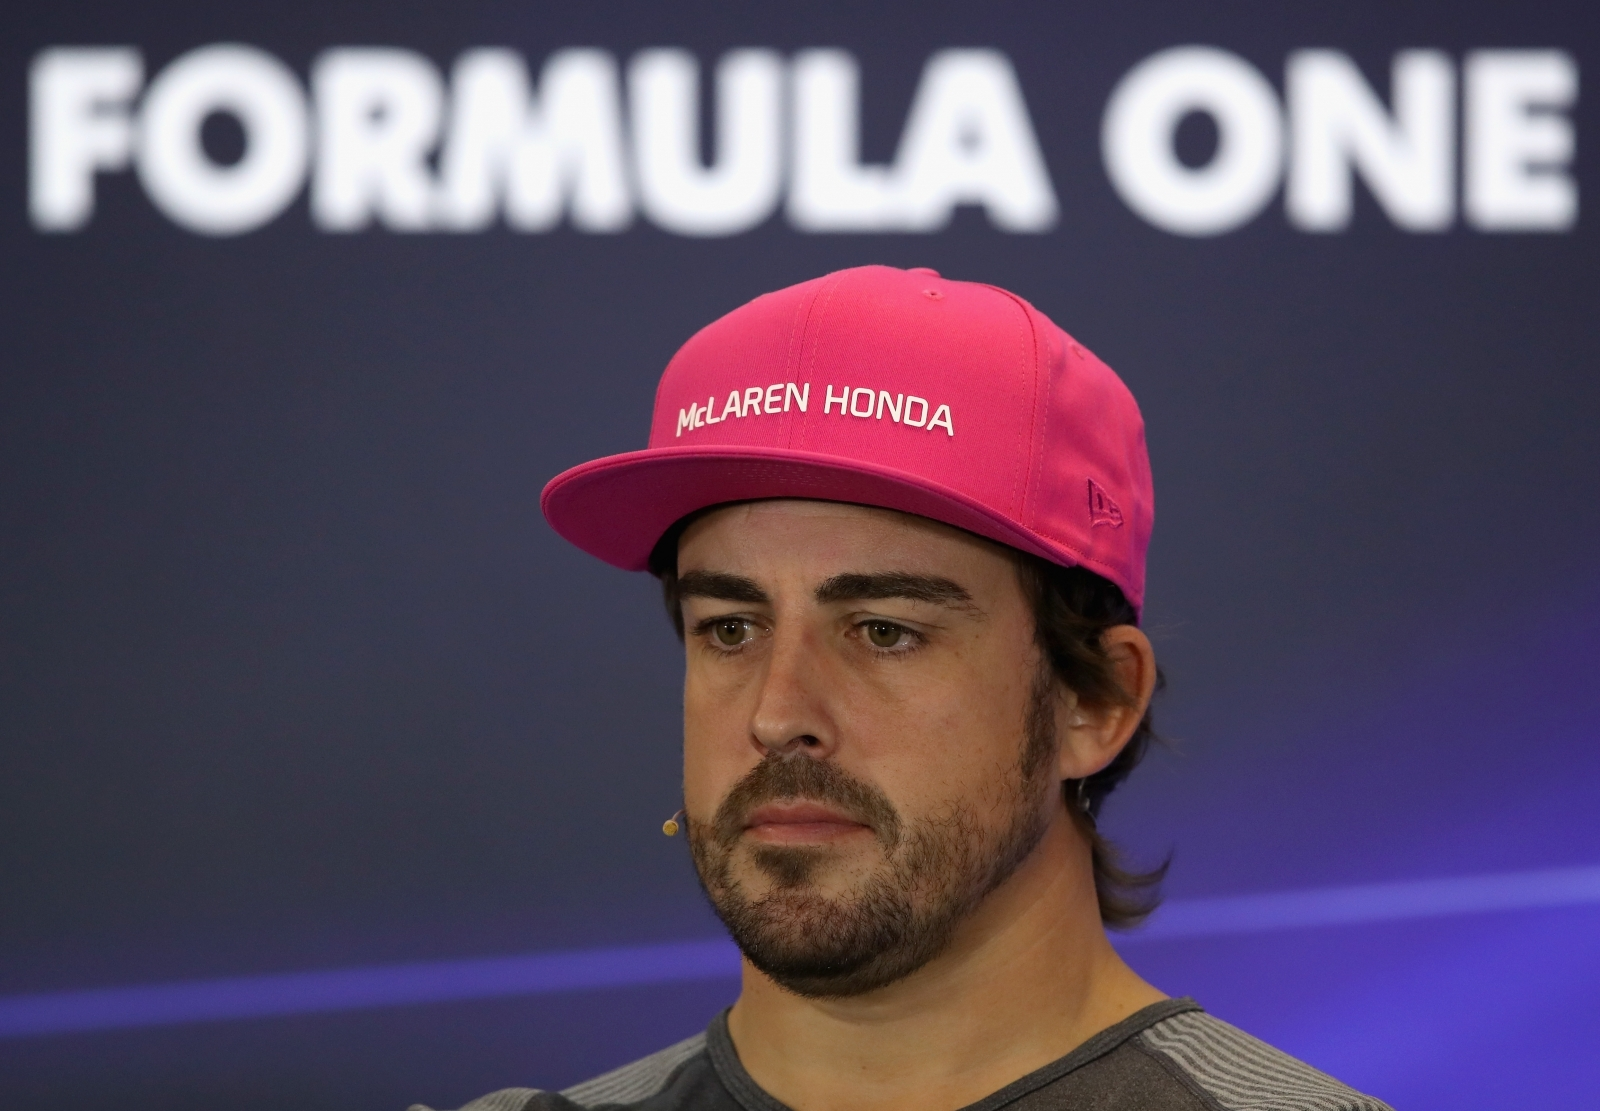 Fernando Alonso signs one-year contract extension with McLaren